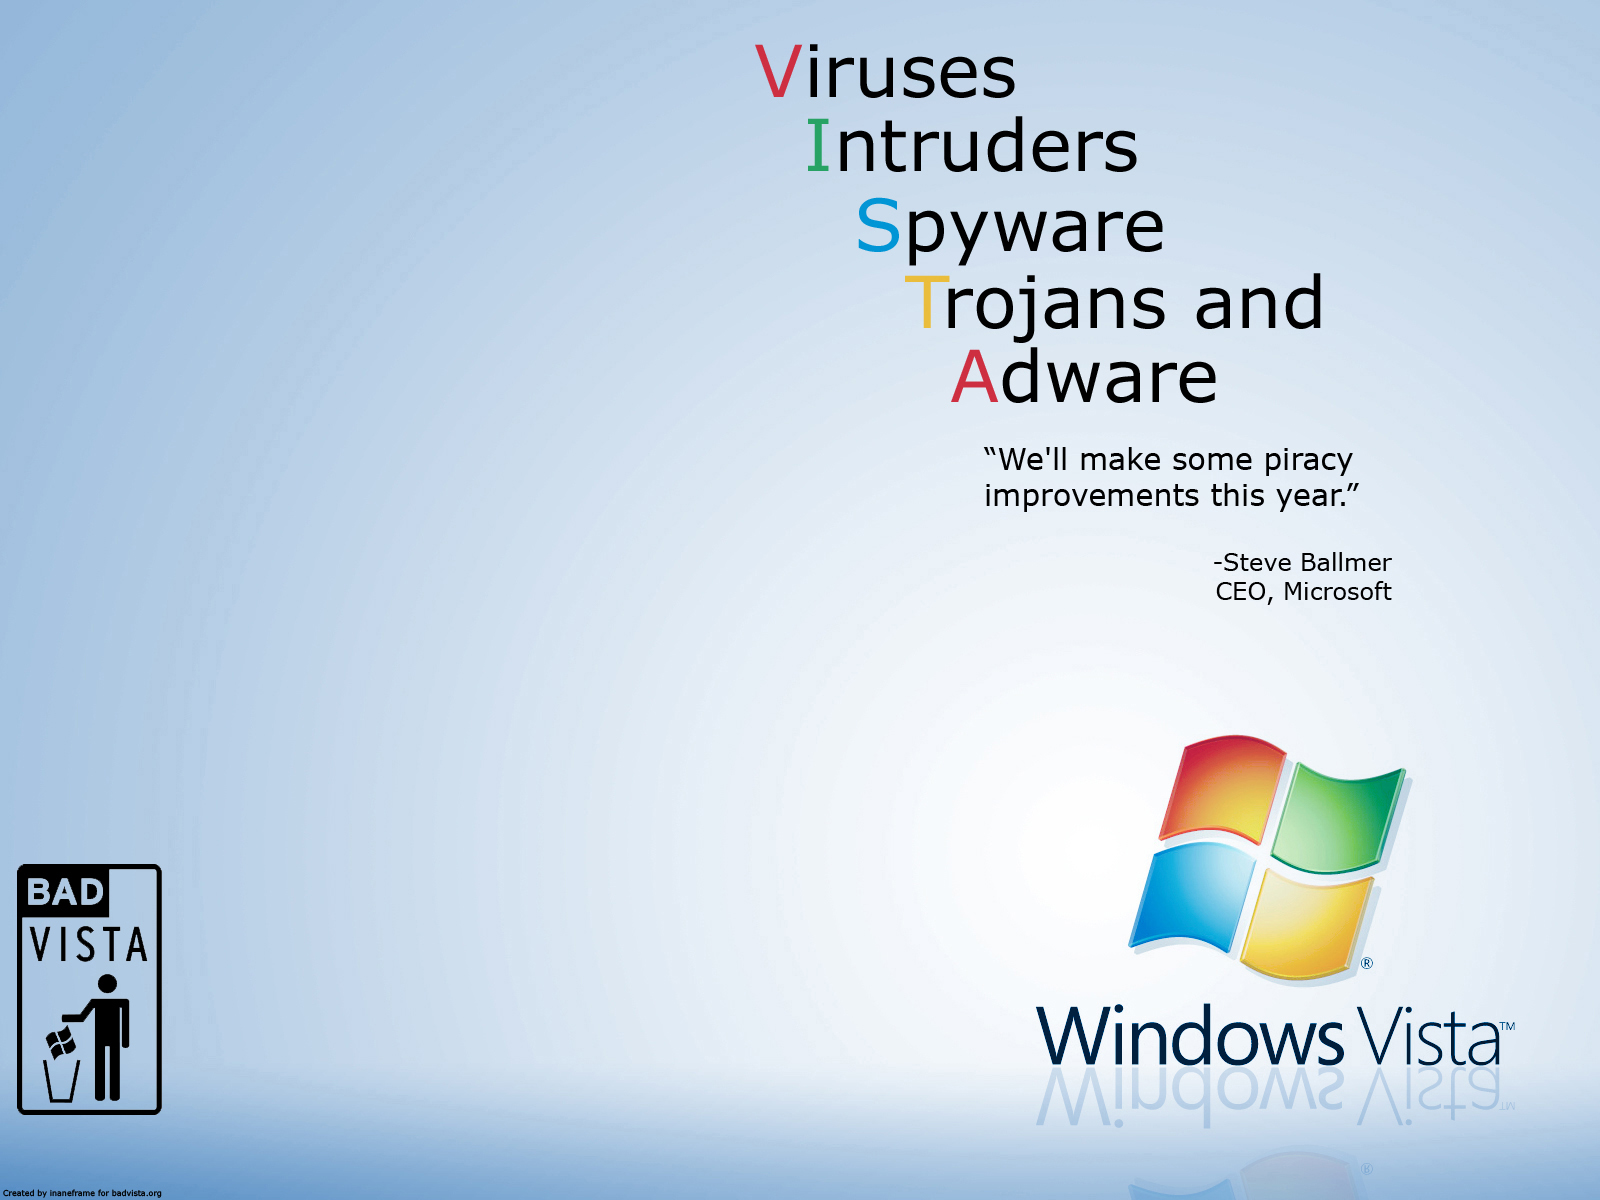 windowsvista.jpg